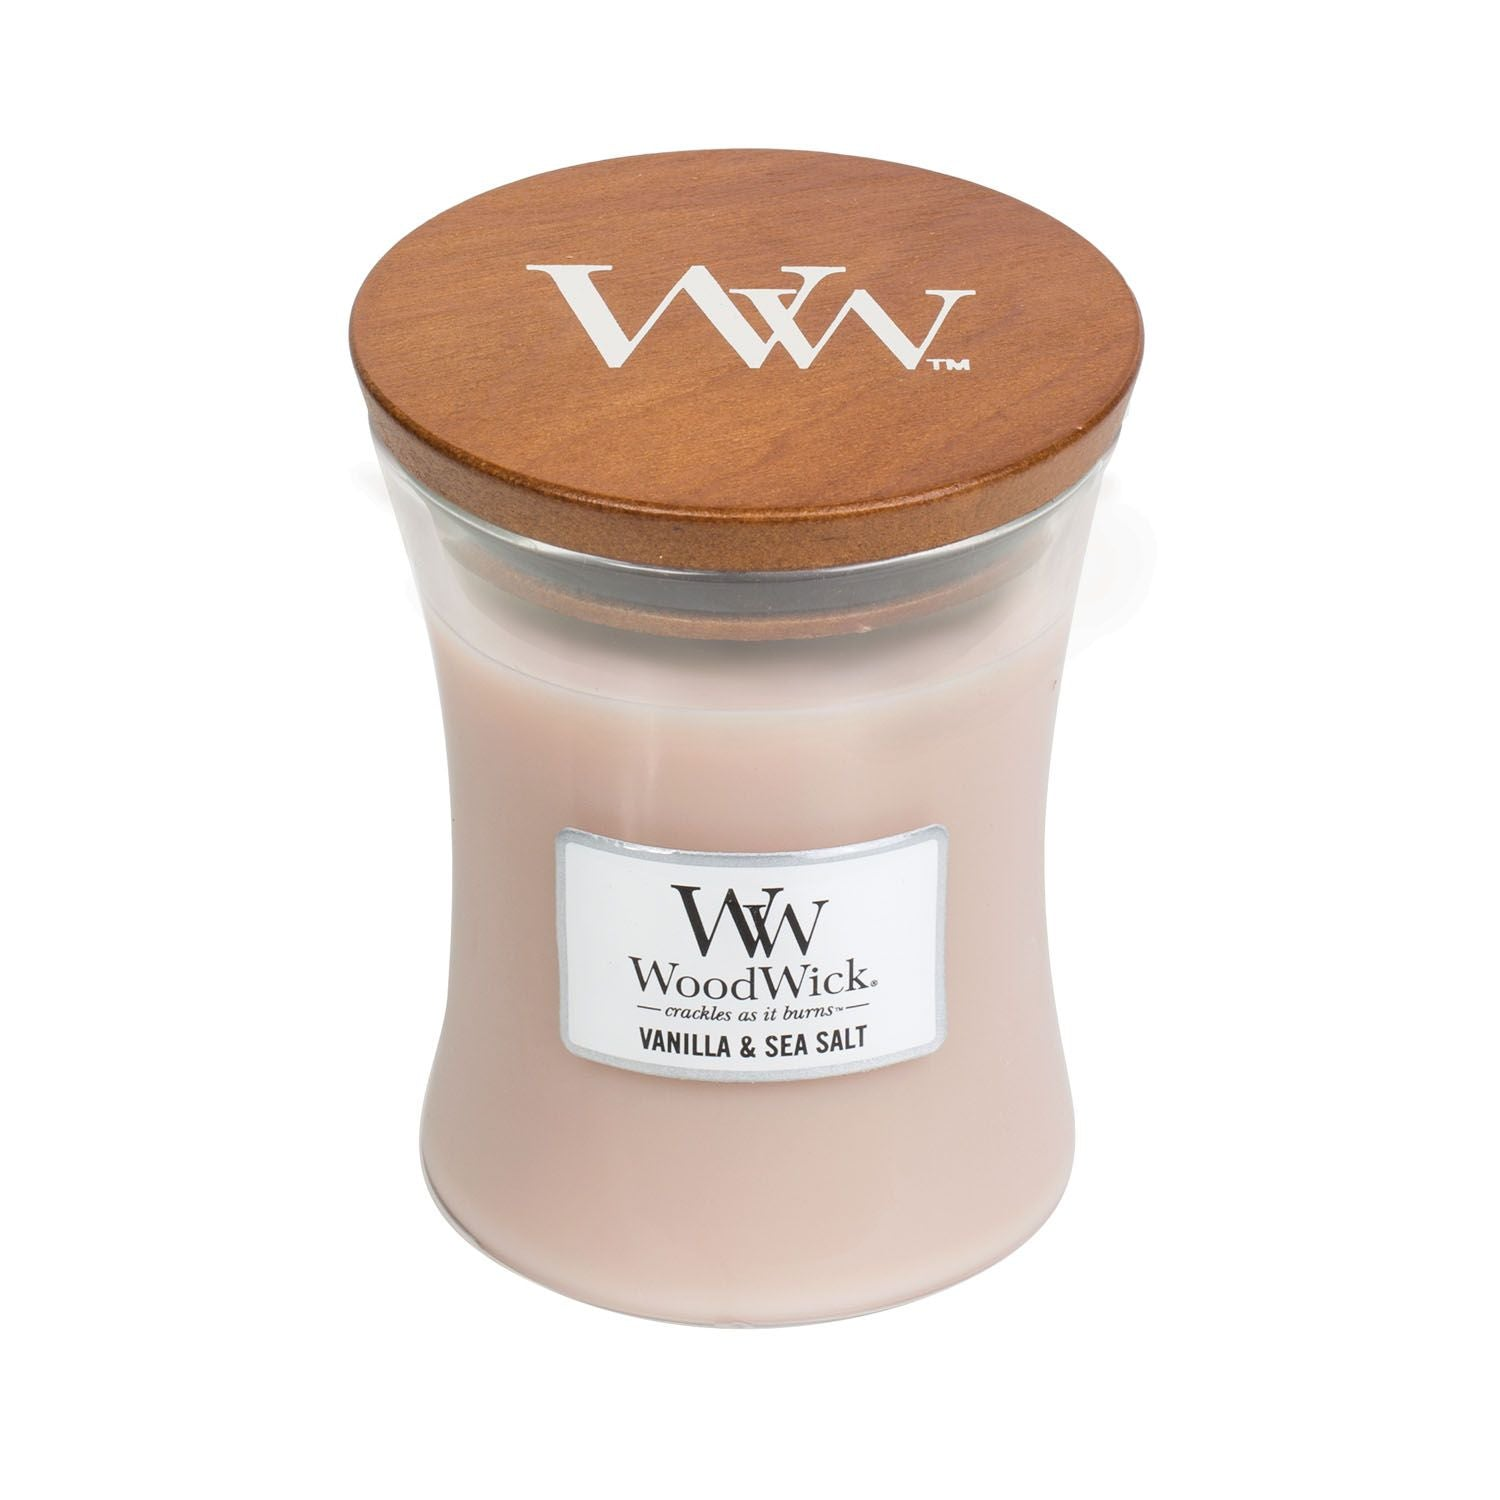 Medium Vanilla & Sea Salt Scented WoodWick Soy Candle